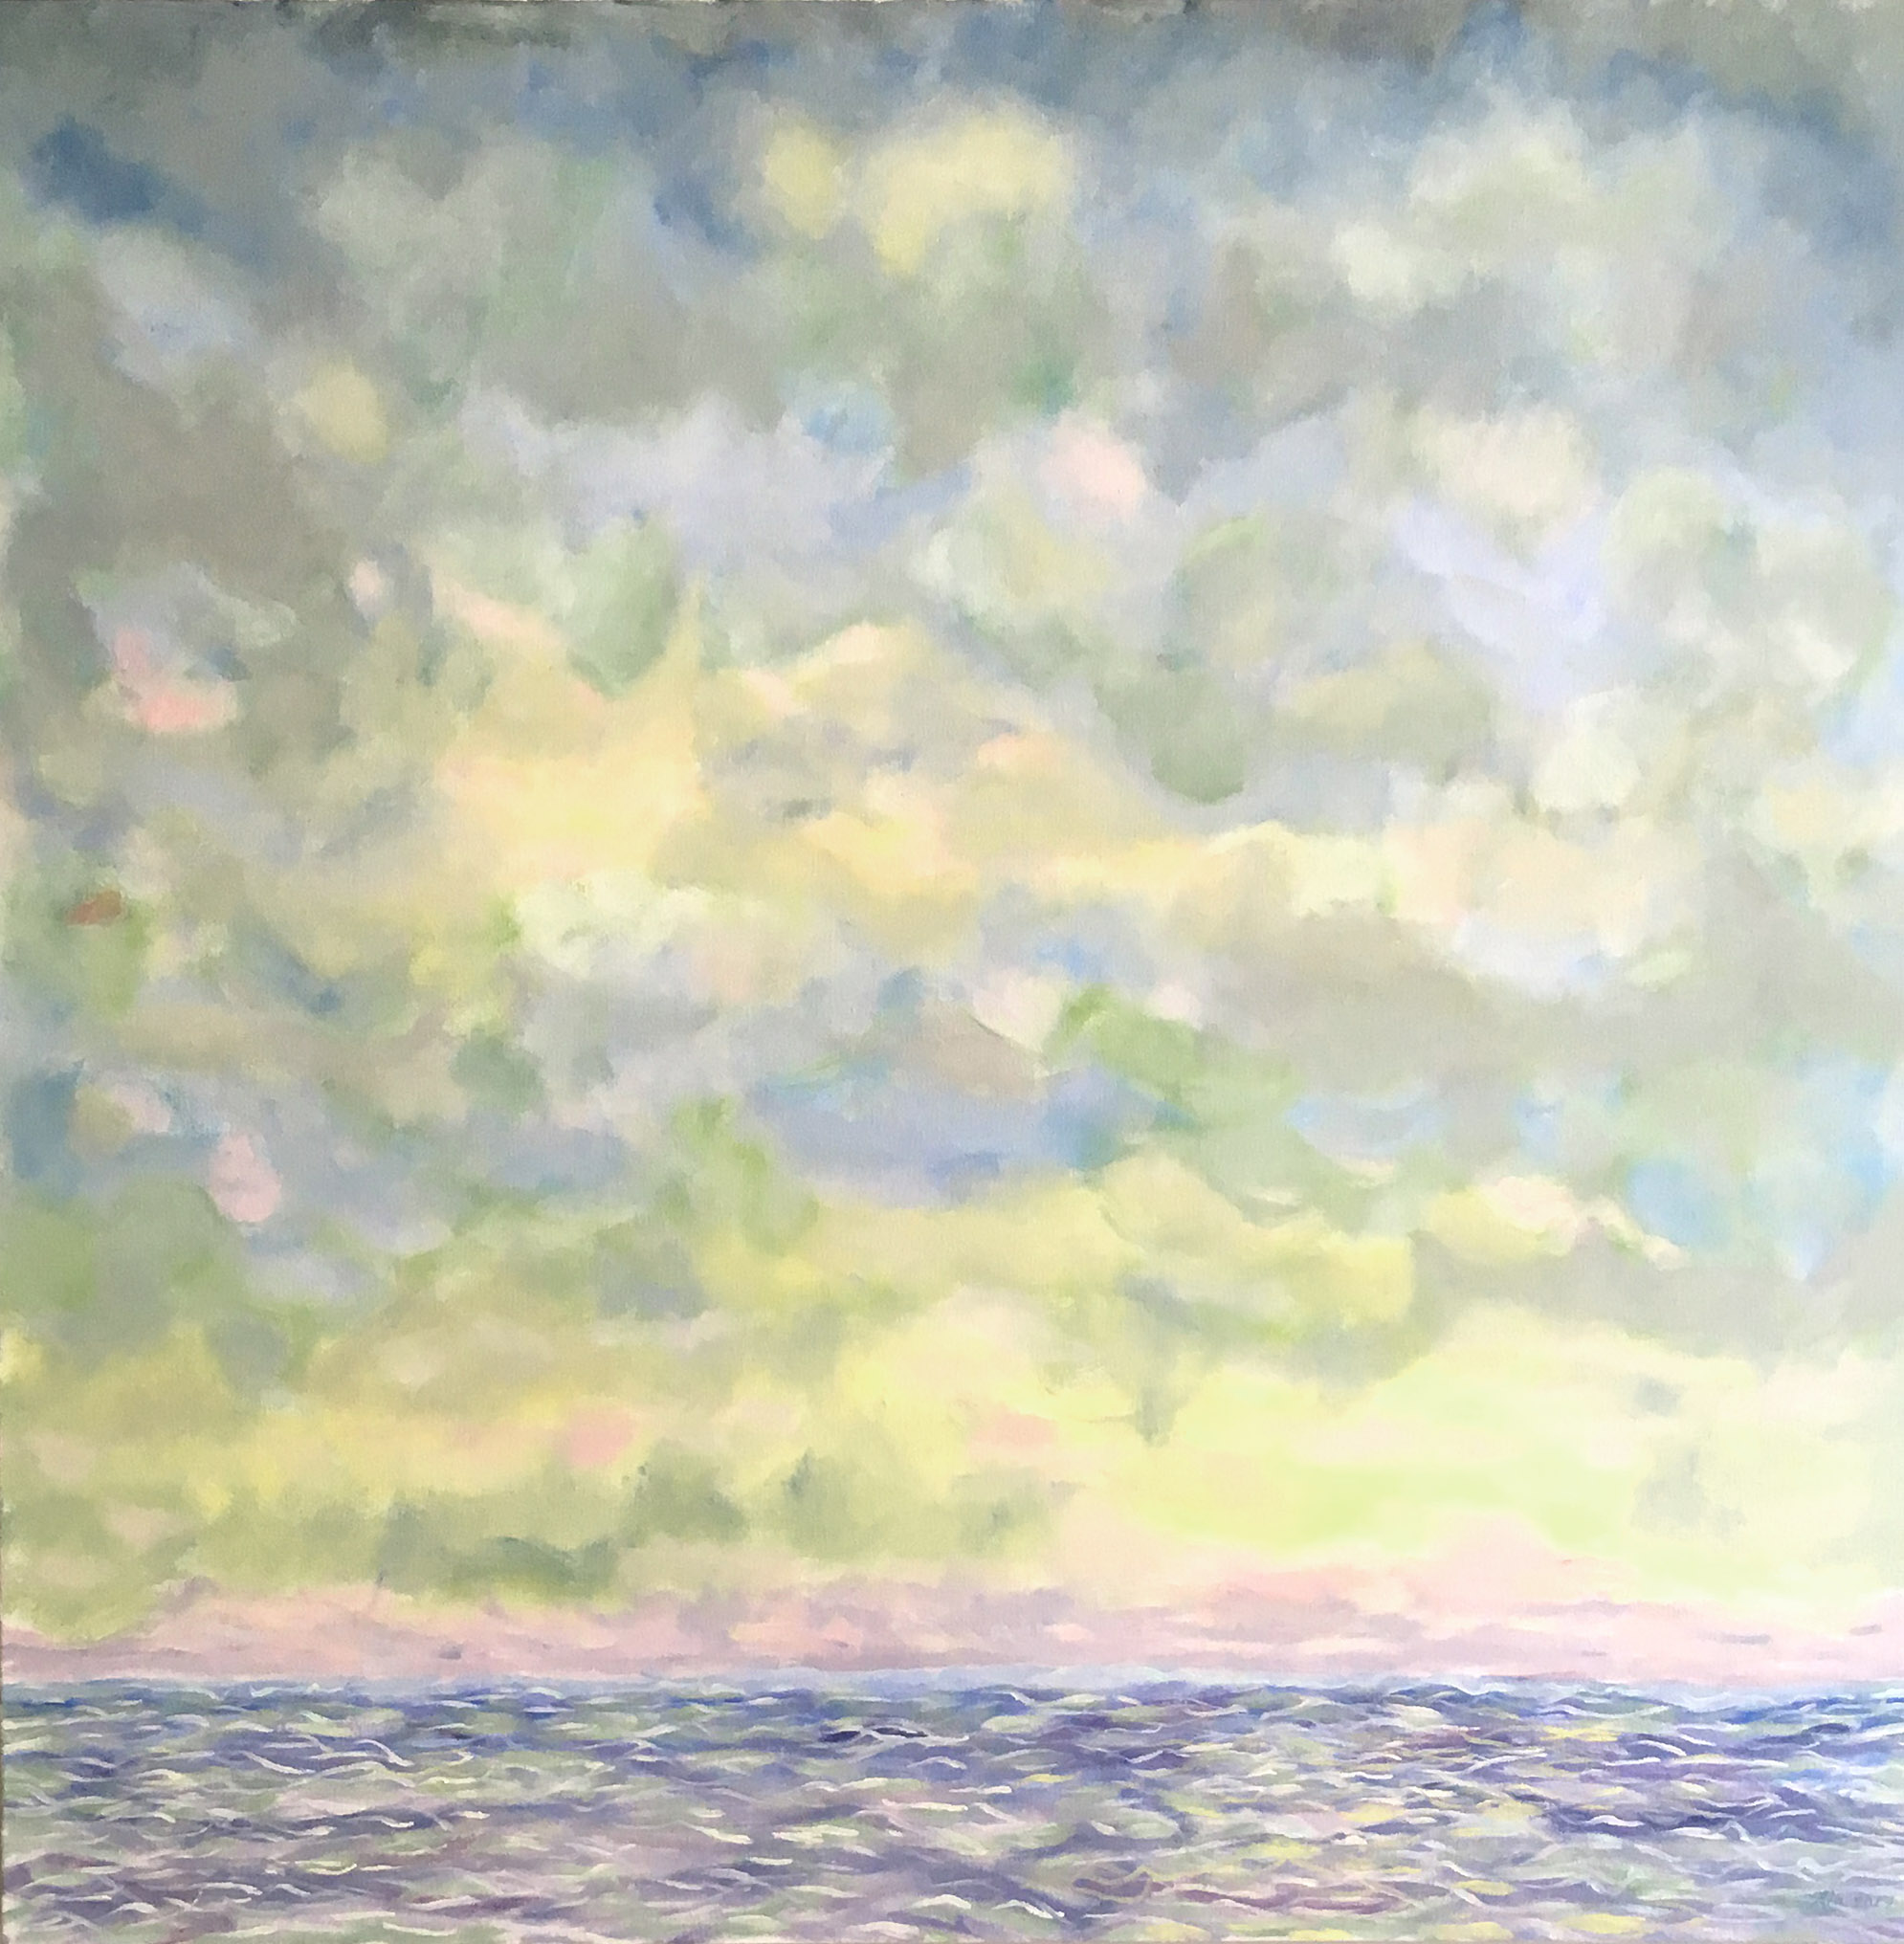 """La Lumière qui Brille, oil on canvas, 36"""" x 36"""" $2,100 Available to view at Sausalito location"""